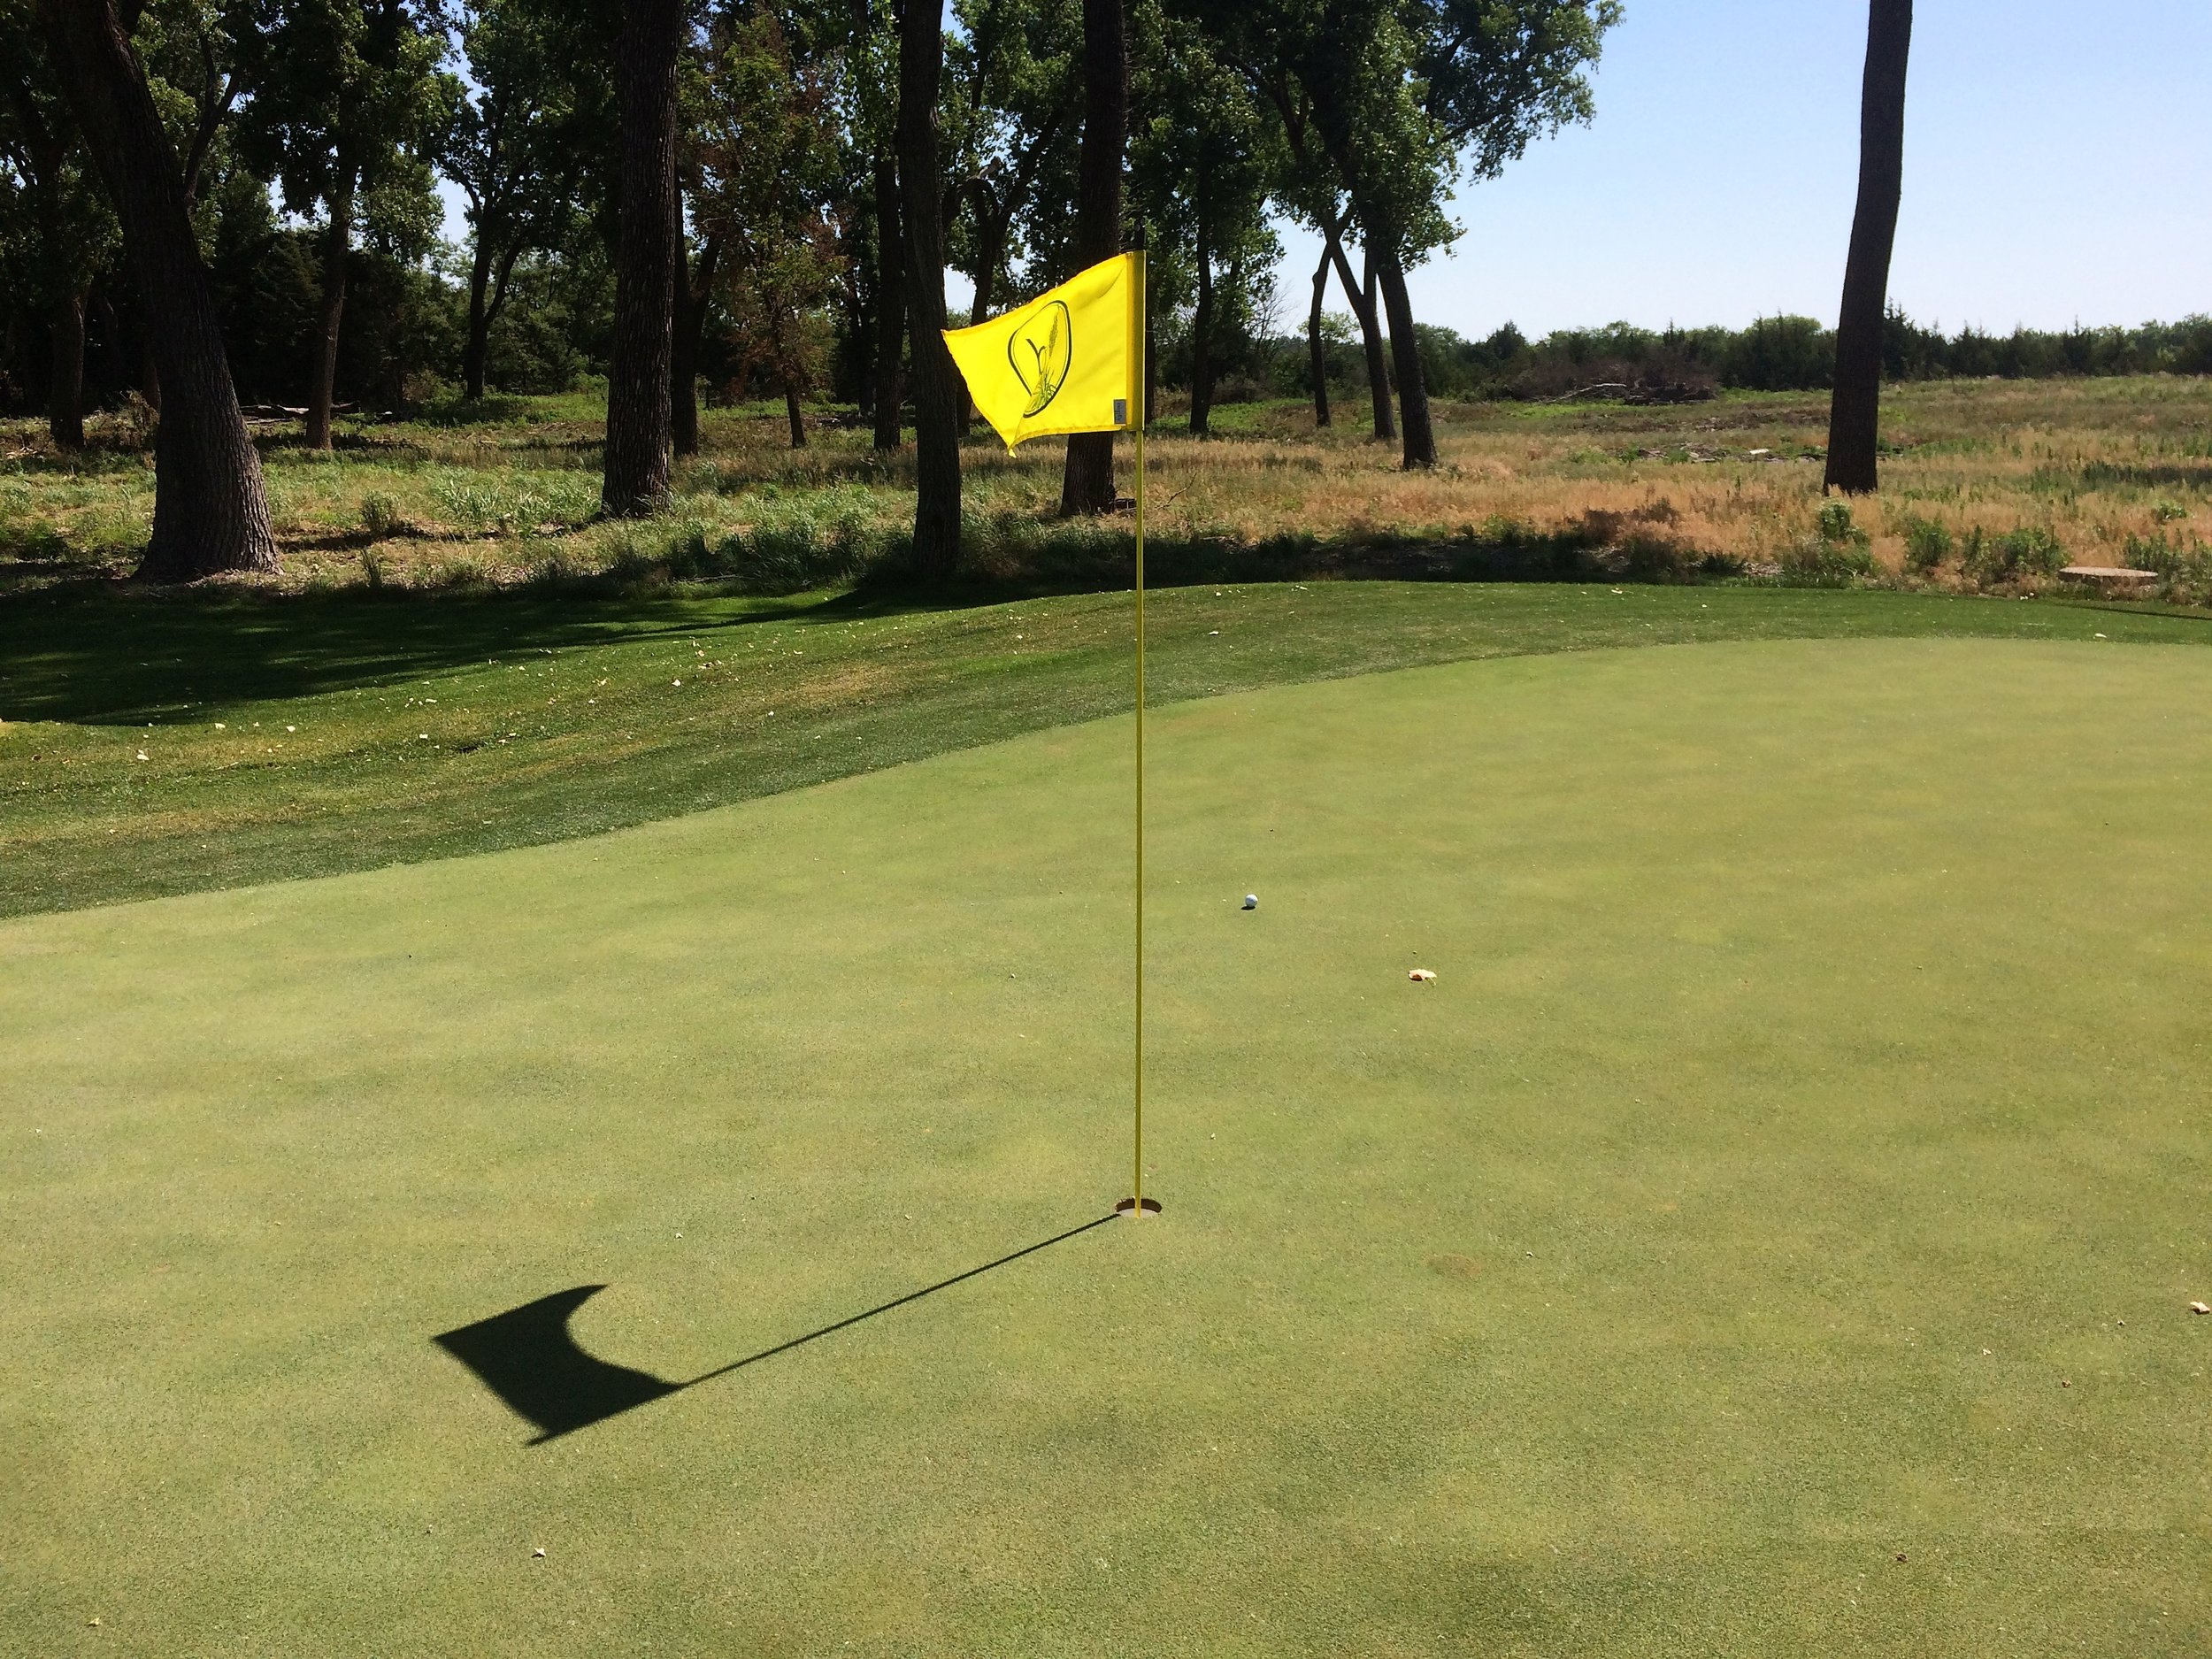 My bunker shot on the 14th hole rolled six feet past the flag.  I made the putt for an improbable par